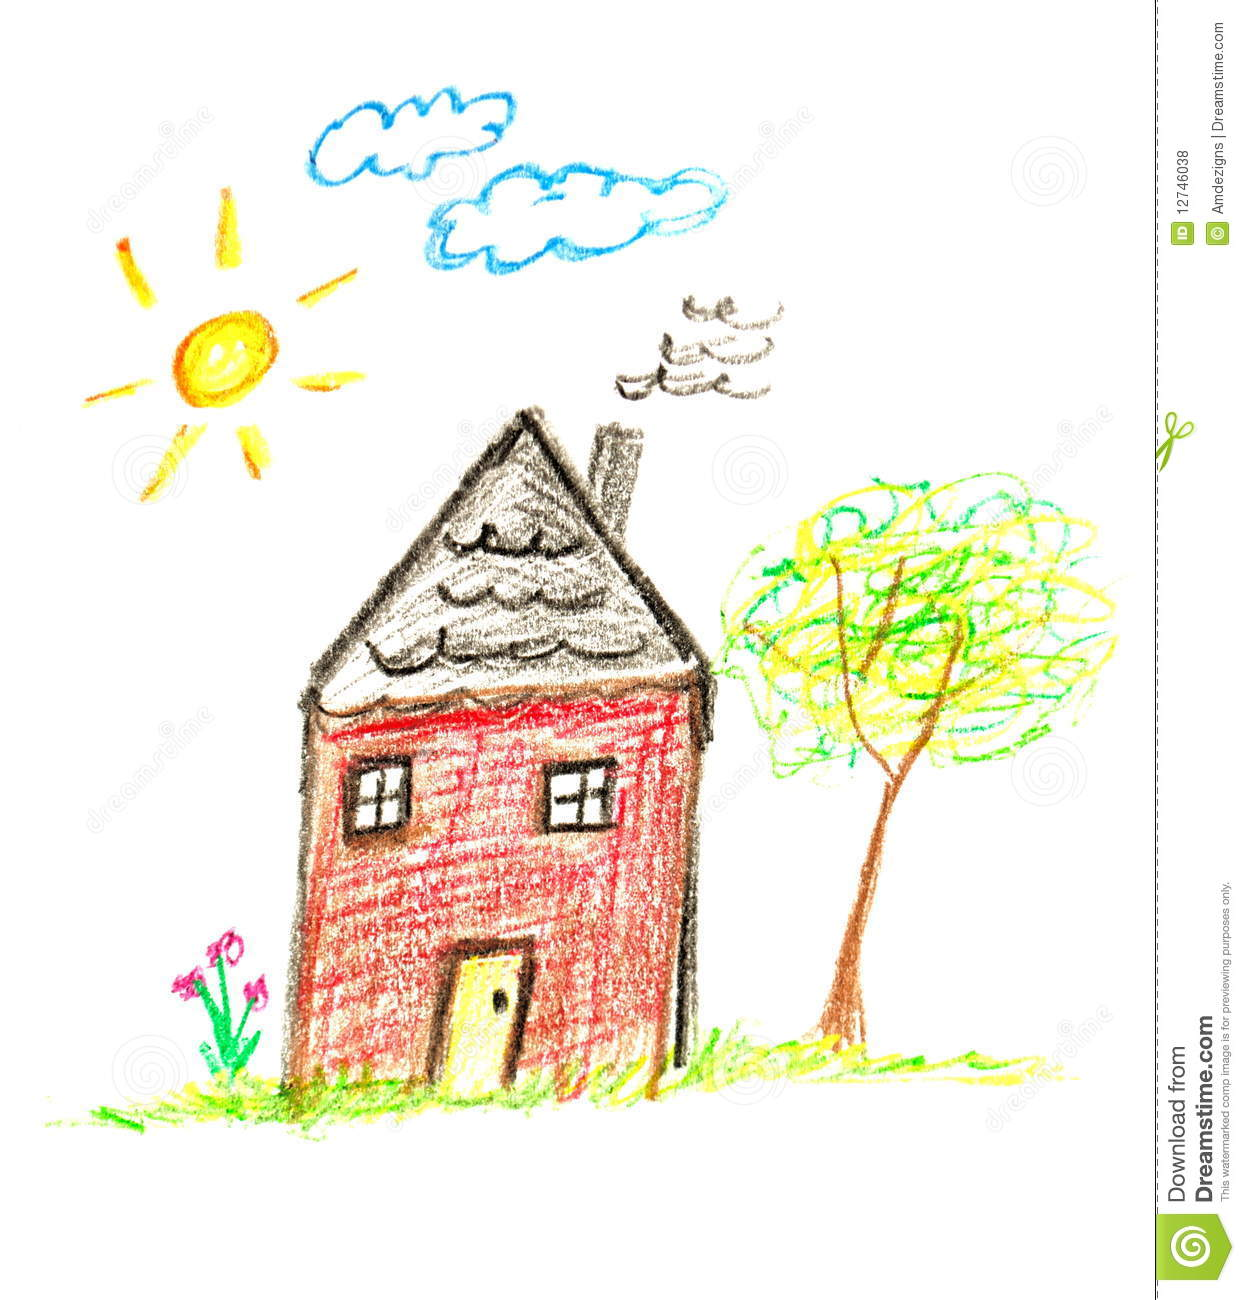 Crayon house stock photo image of kids house crayon 12746038 - Houses for families withchild ...